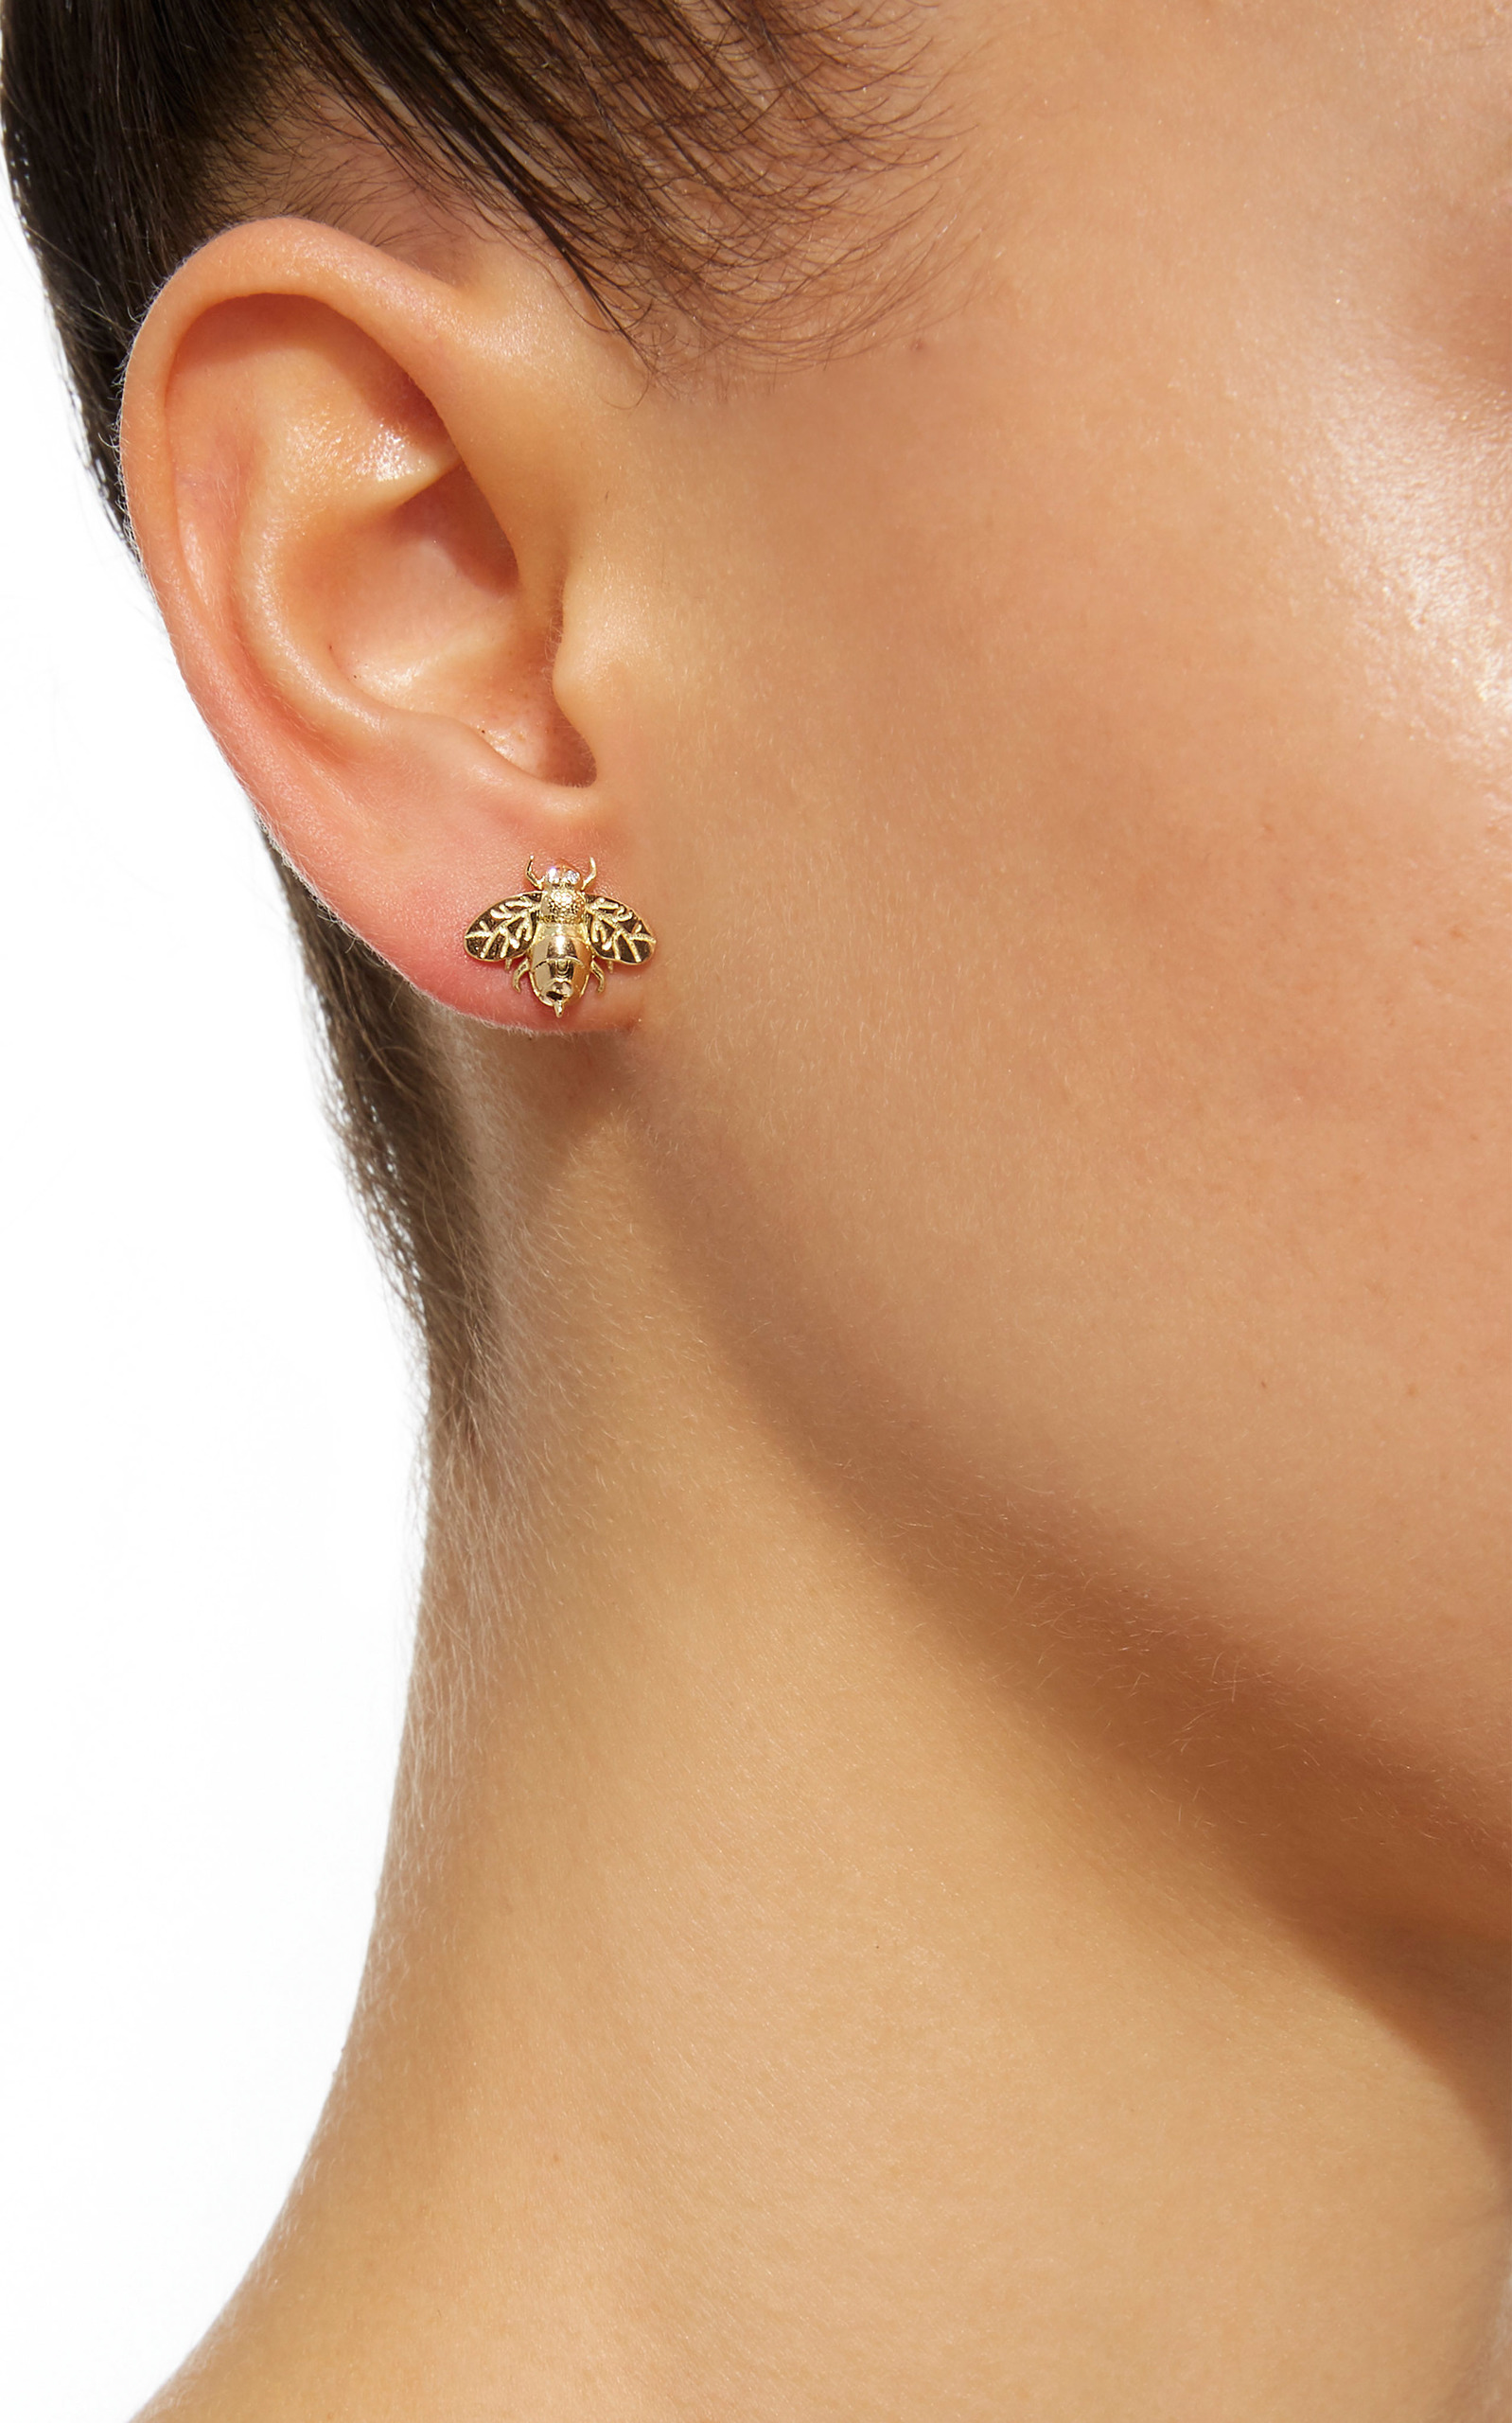 in lab shop styling baby jewellery personal earrings accessories img gold fashion stud bill bee mutrend skinner